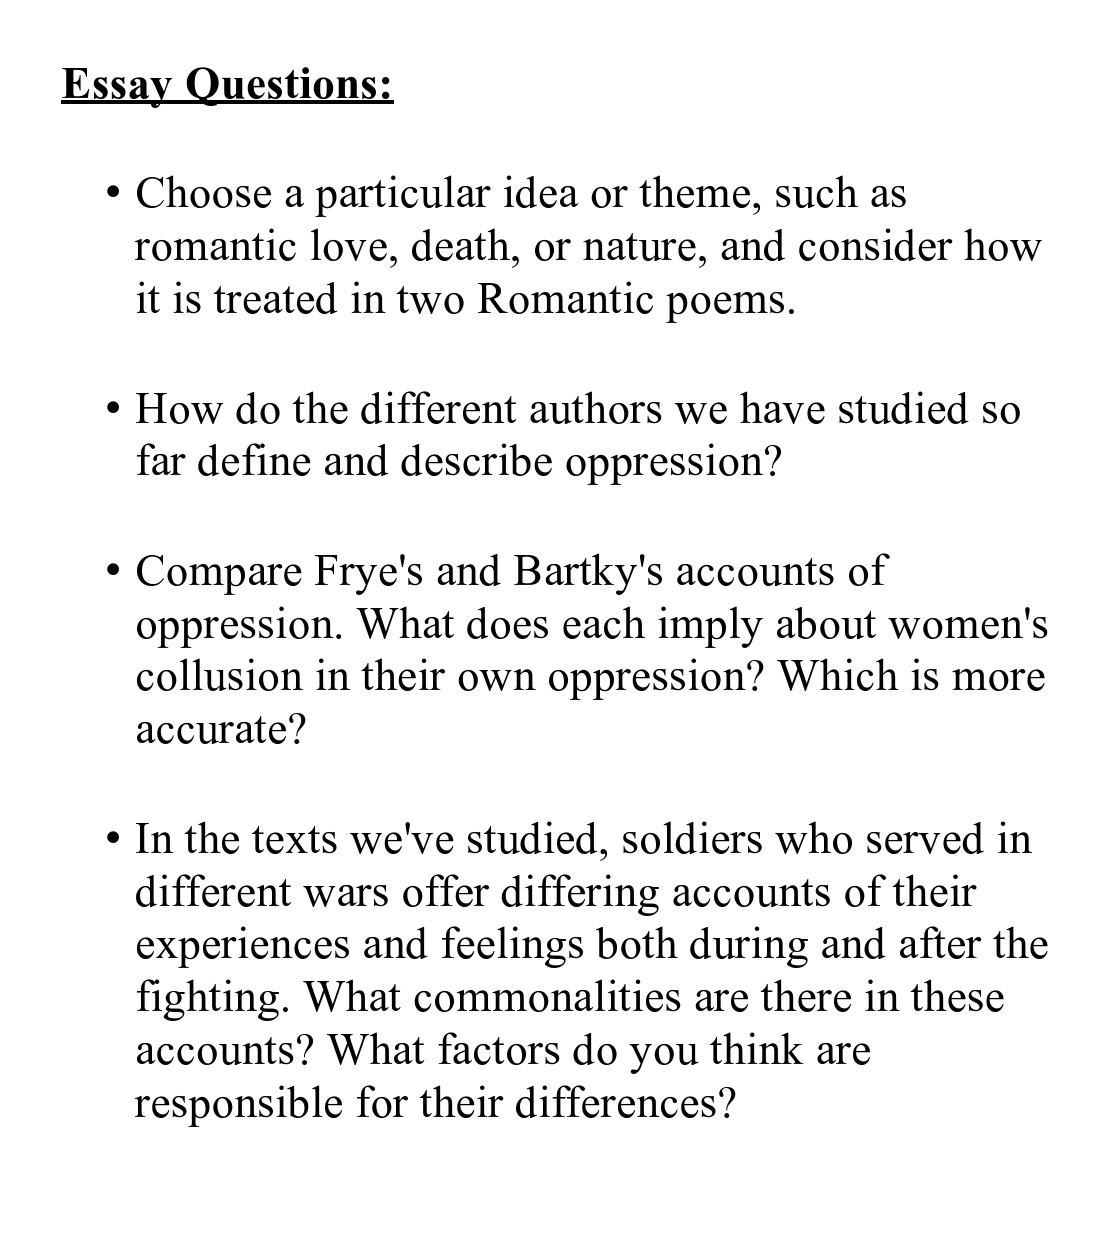 007 College Essay Topics Example Questions Top A B And C Argumentative Common To Avoid Full